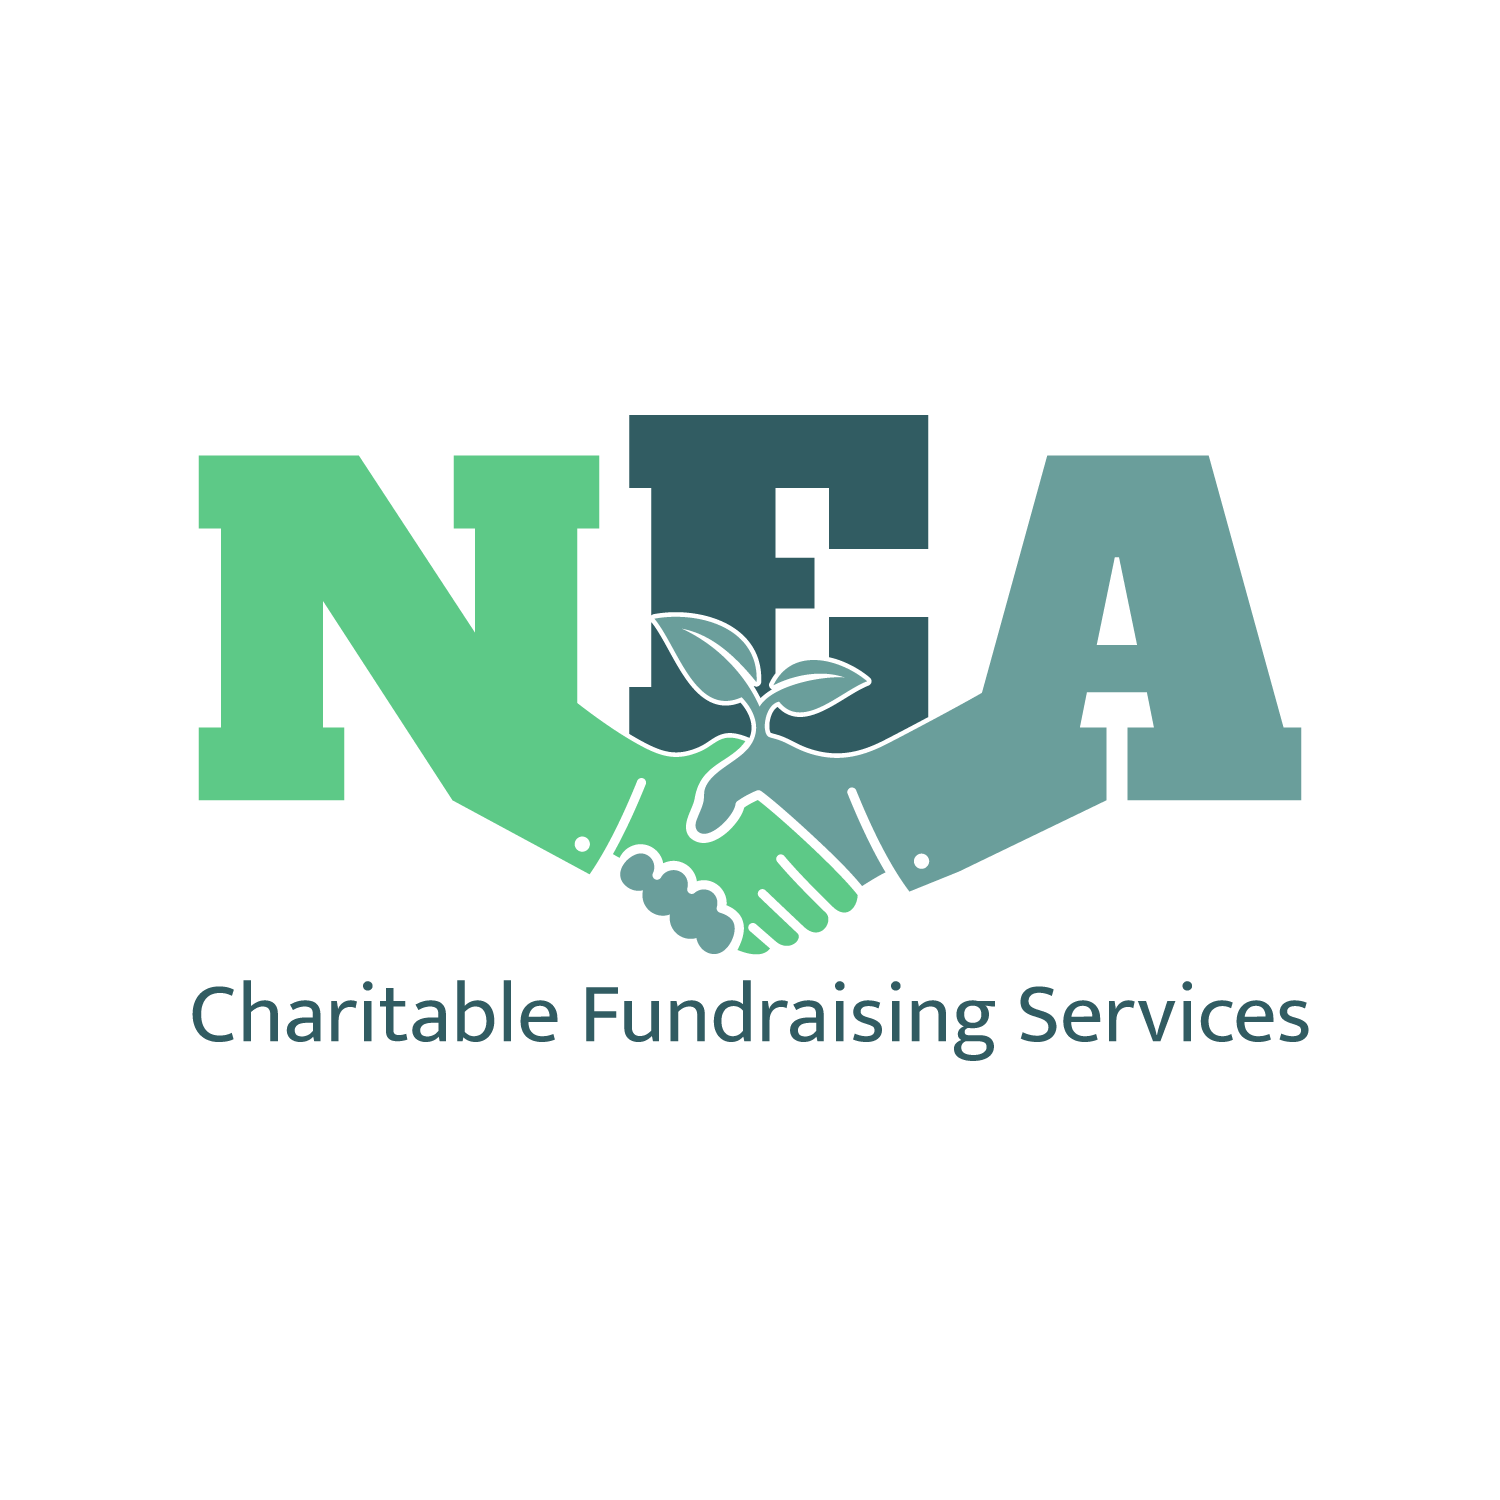 NEA Charitable Fundraising Services Can Now Accept Bitcoin for All Major Charities